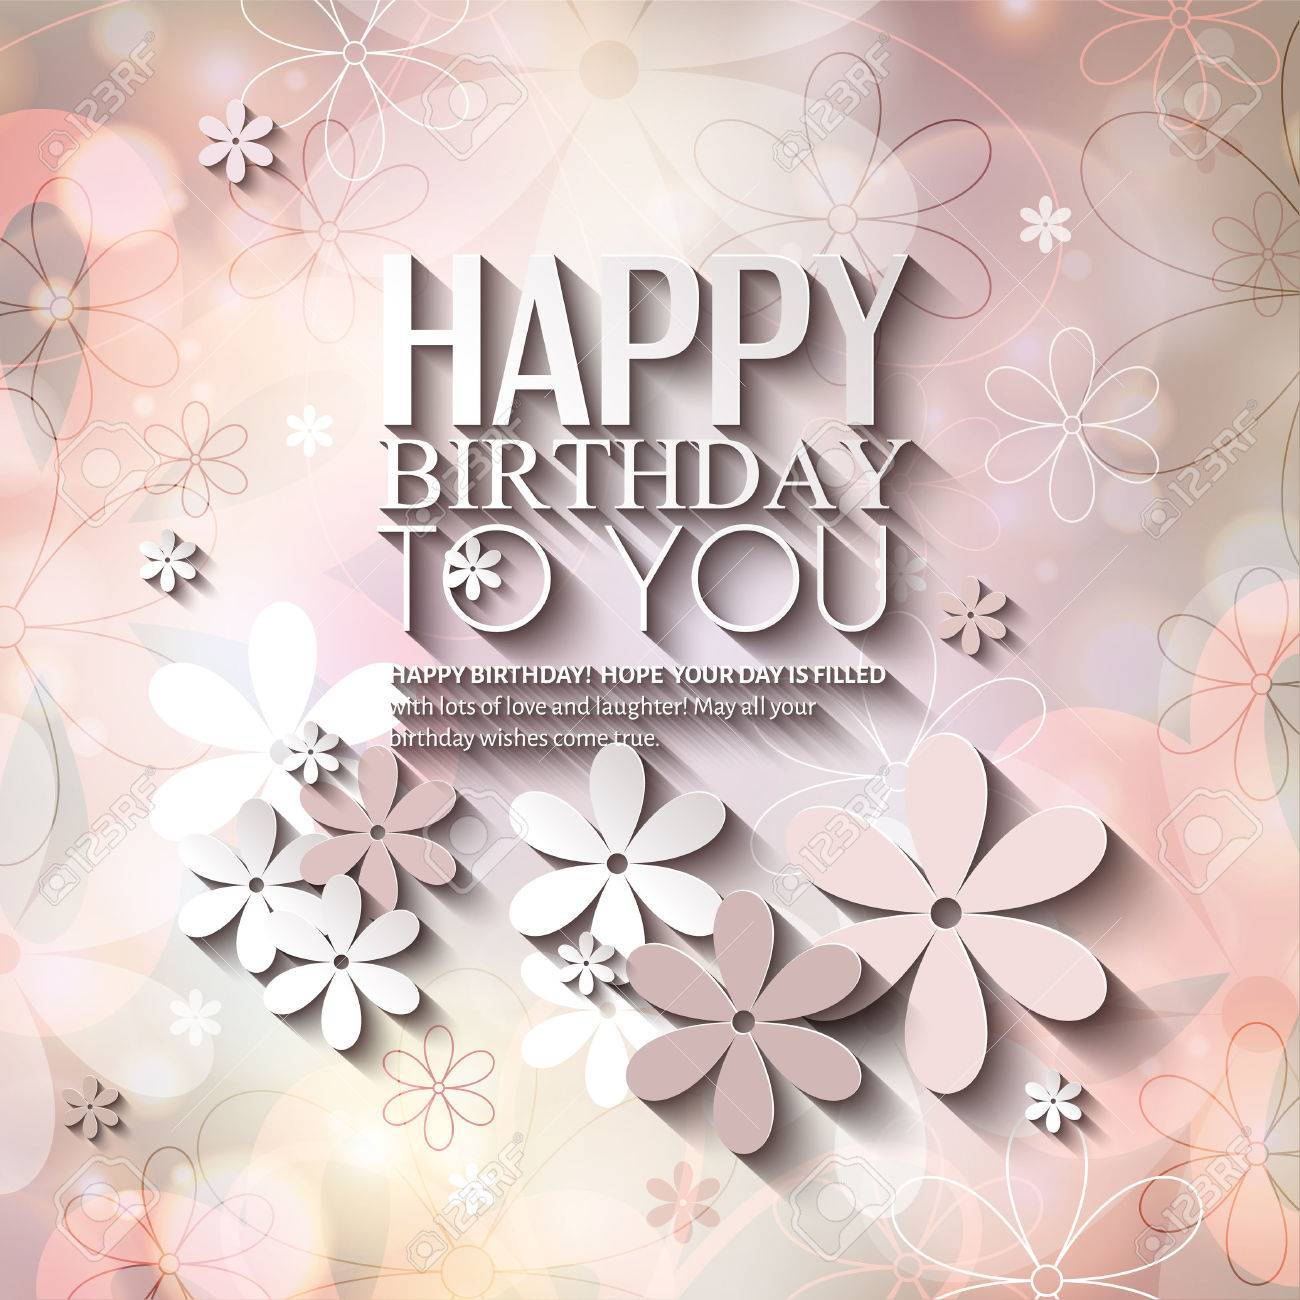 Birthday card with flowers on colorful background. - 31446735